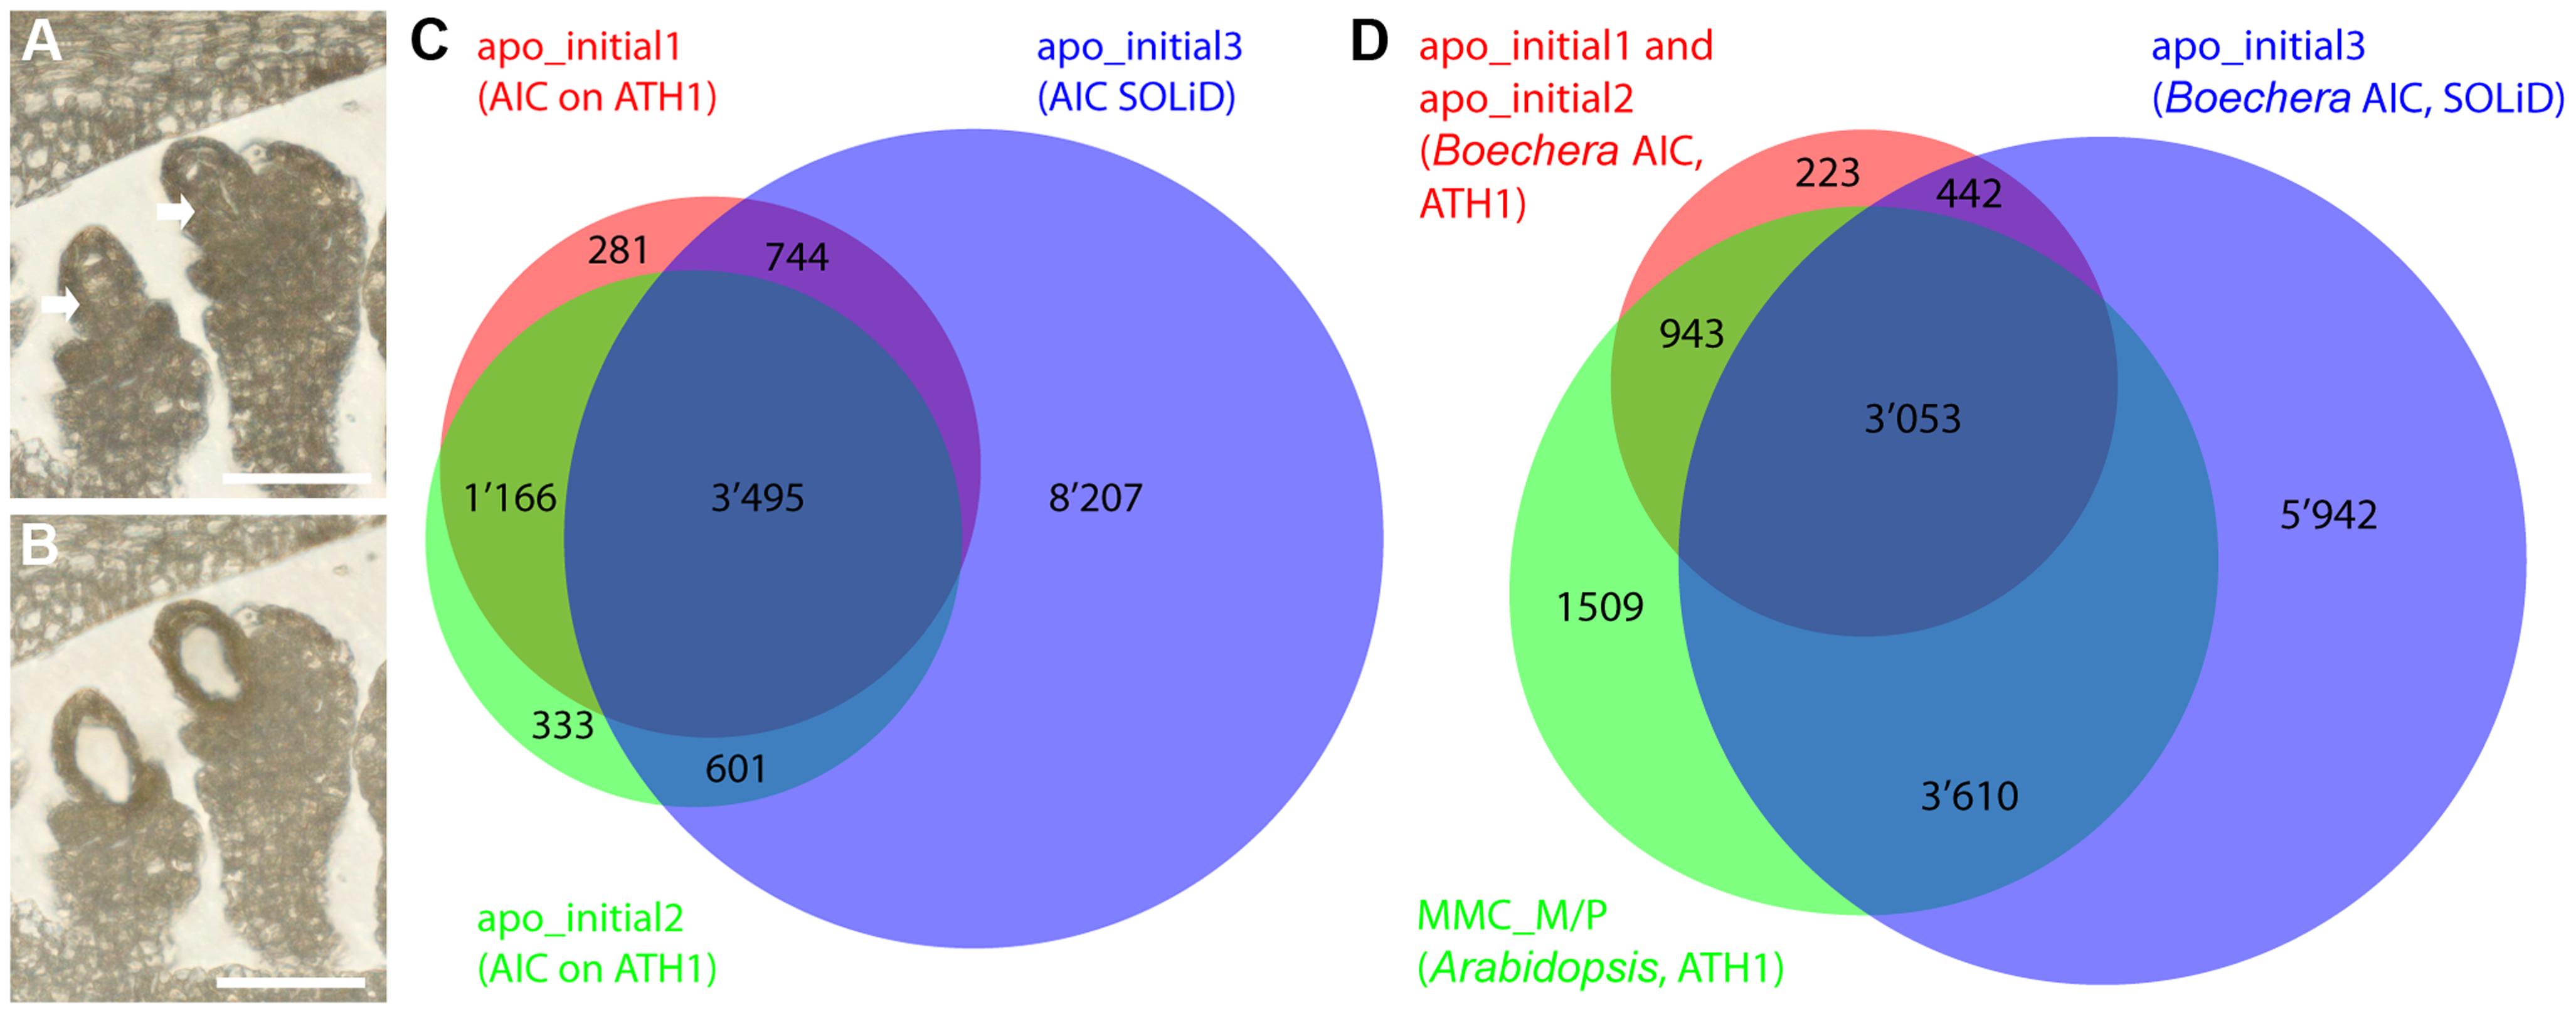 Laser-assisted microdissection (LAM) and transcriptome analysis to study the <i>Boechera</i> apomictic initial cell (AIC).